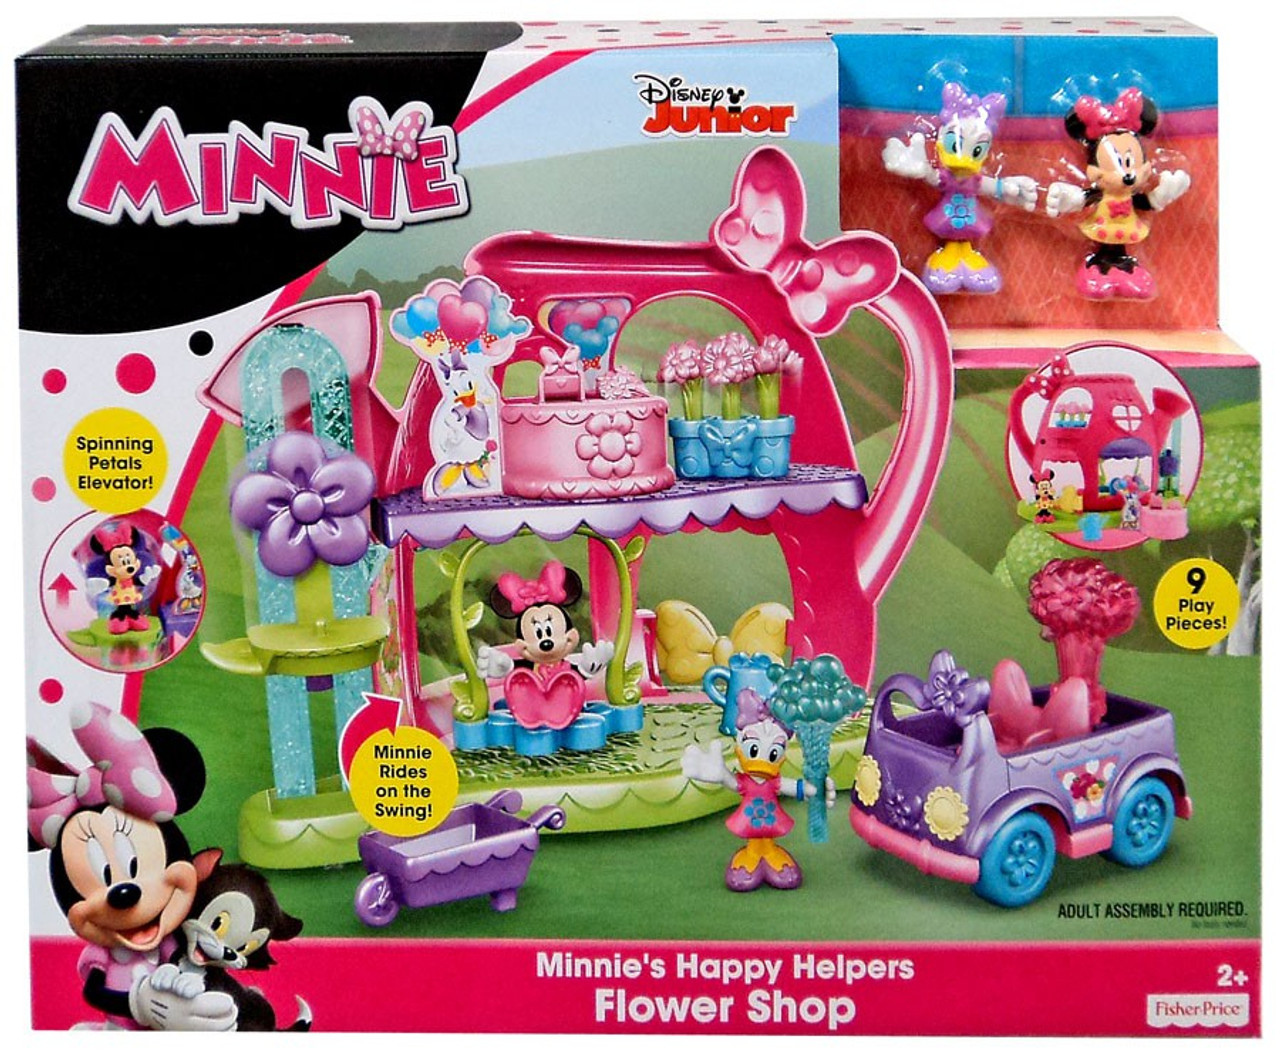 Minnie Mouse Playsets